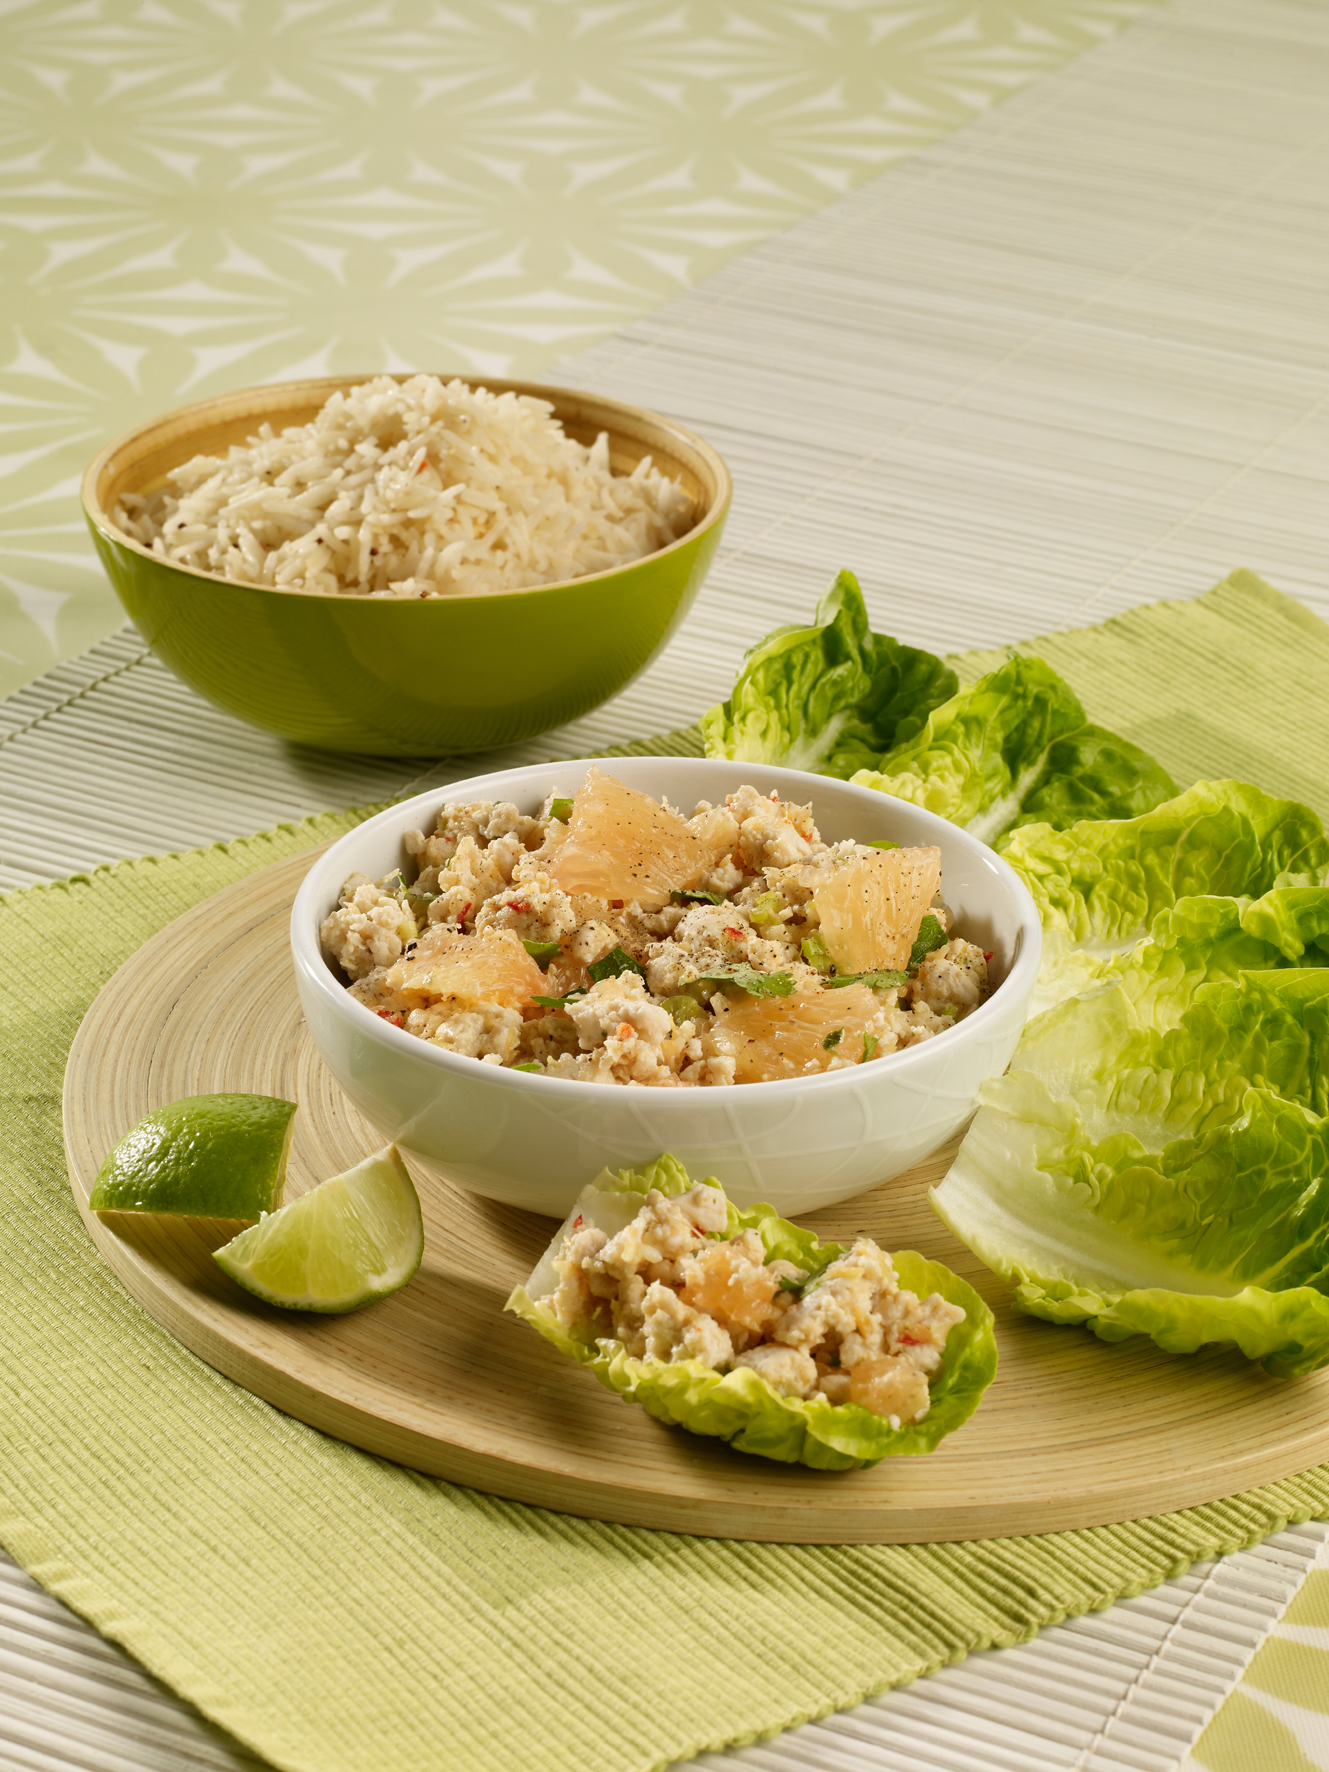 Minced chicken salad with coriander, lemongrass and pink grapefruit picture